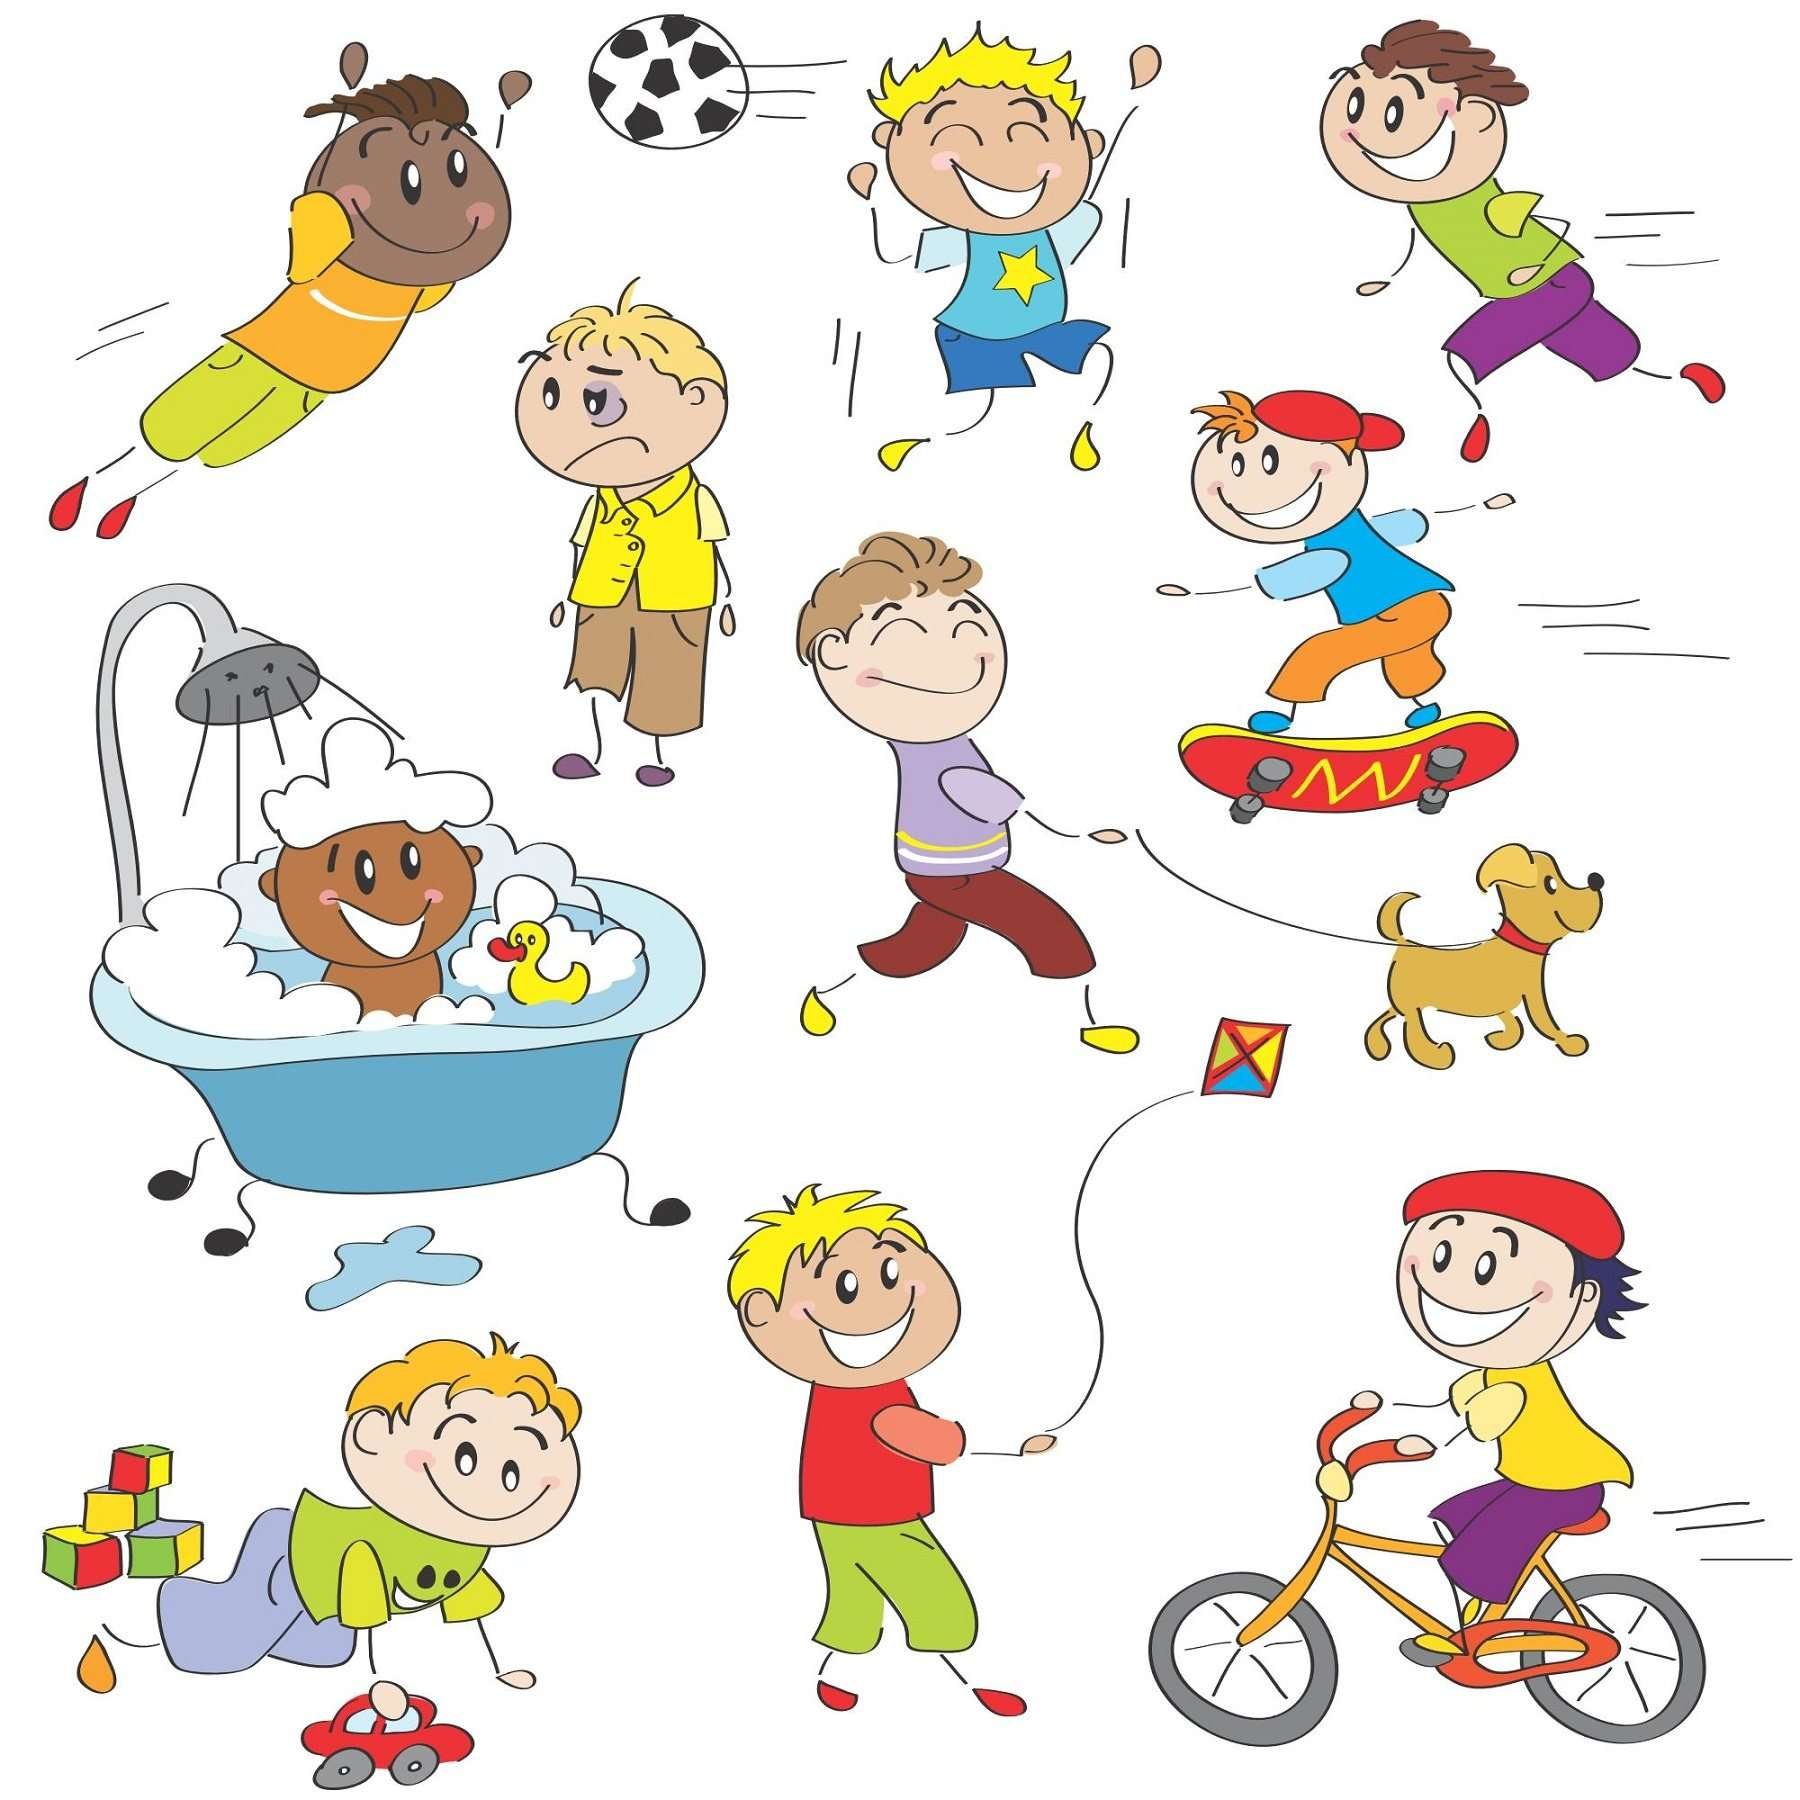 cartoon children kids people 06 cartoon kids background cartoon kids background vector free download - Download Free Kids Cartoon